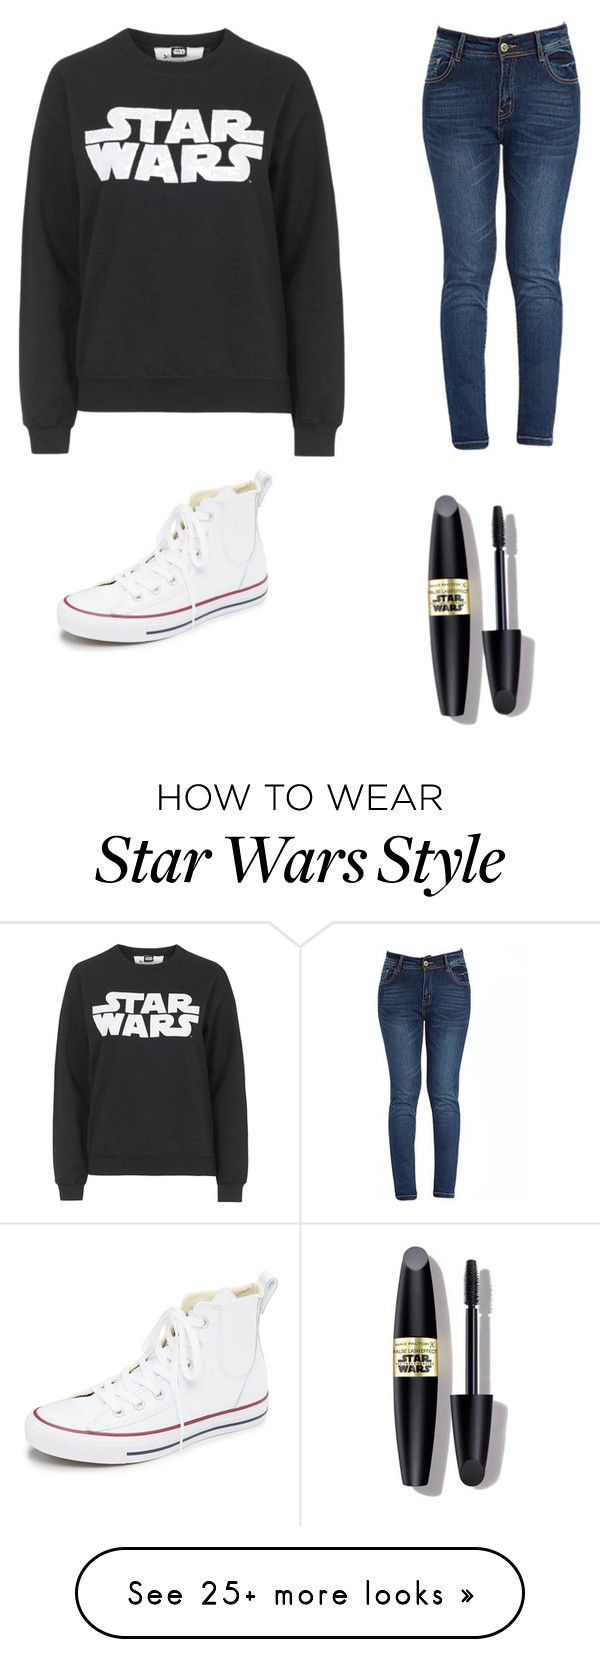 """""""Star Wars"""" by paytonklug on Polyvore featuring Tee and Cake, Converse, Max Factor, women's clothing, women's fashion, women, female, woman, misses and juniors"""